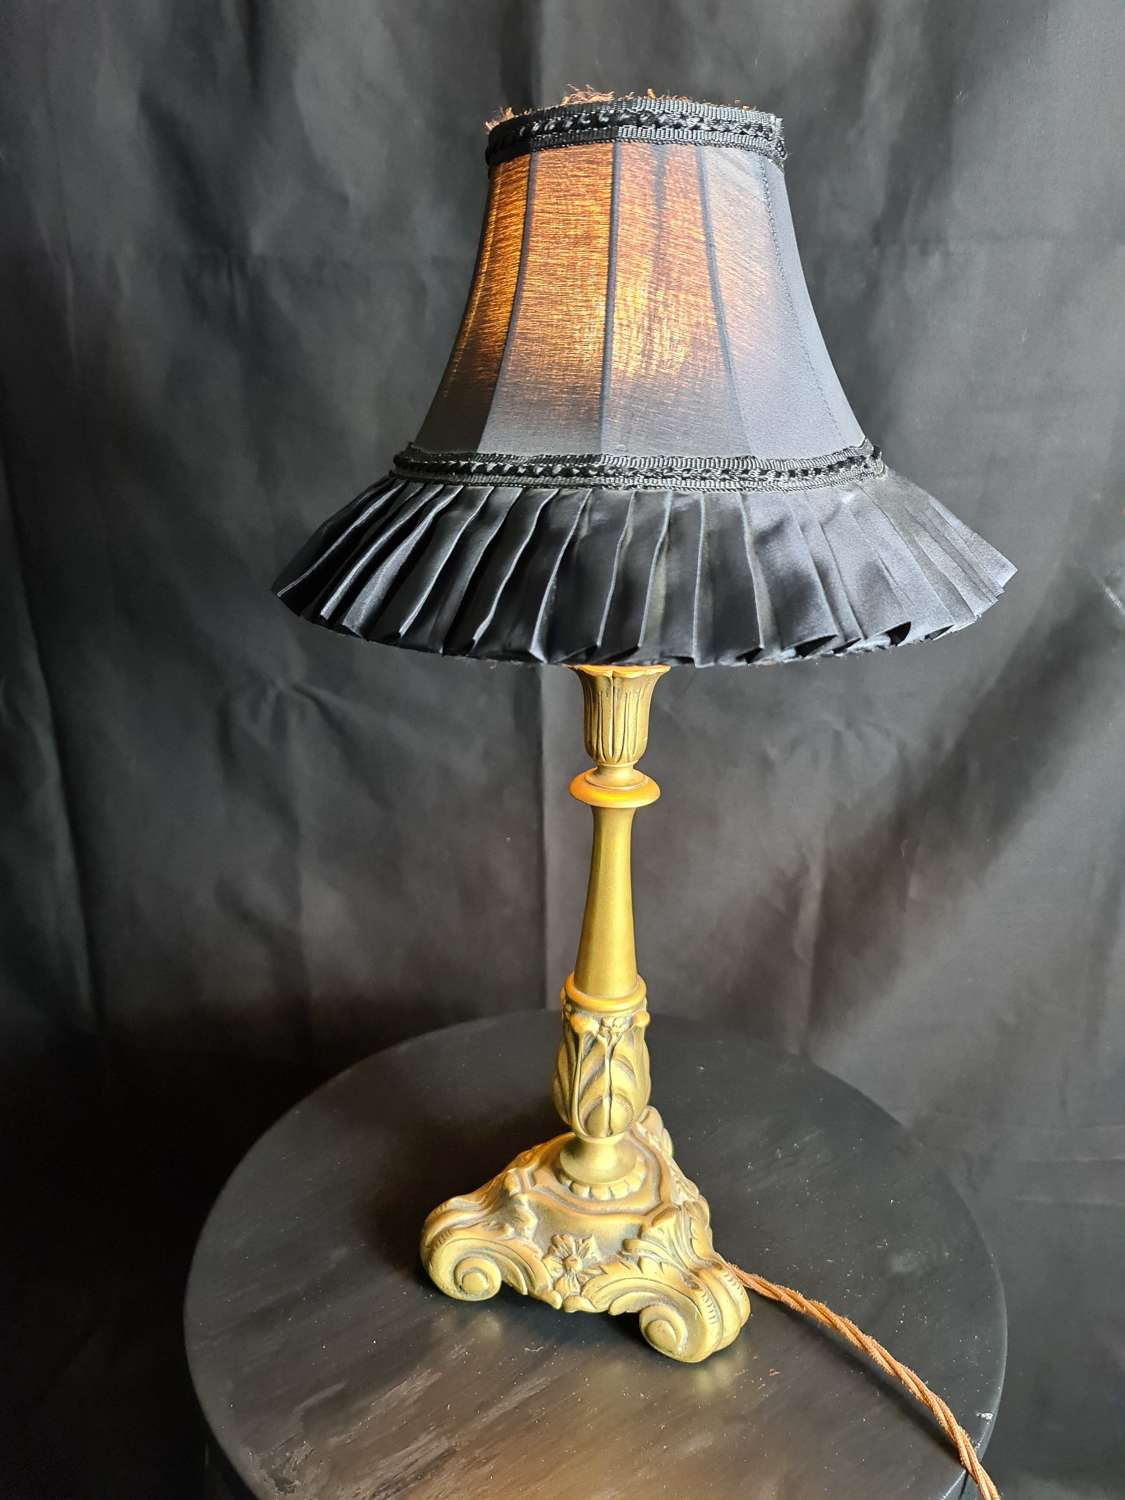 A Small Brass Art Nouveau Style Table Lamp